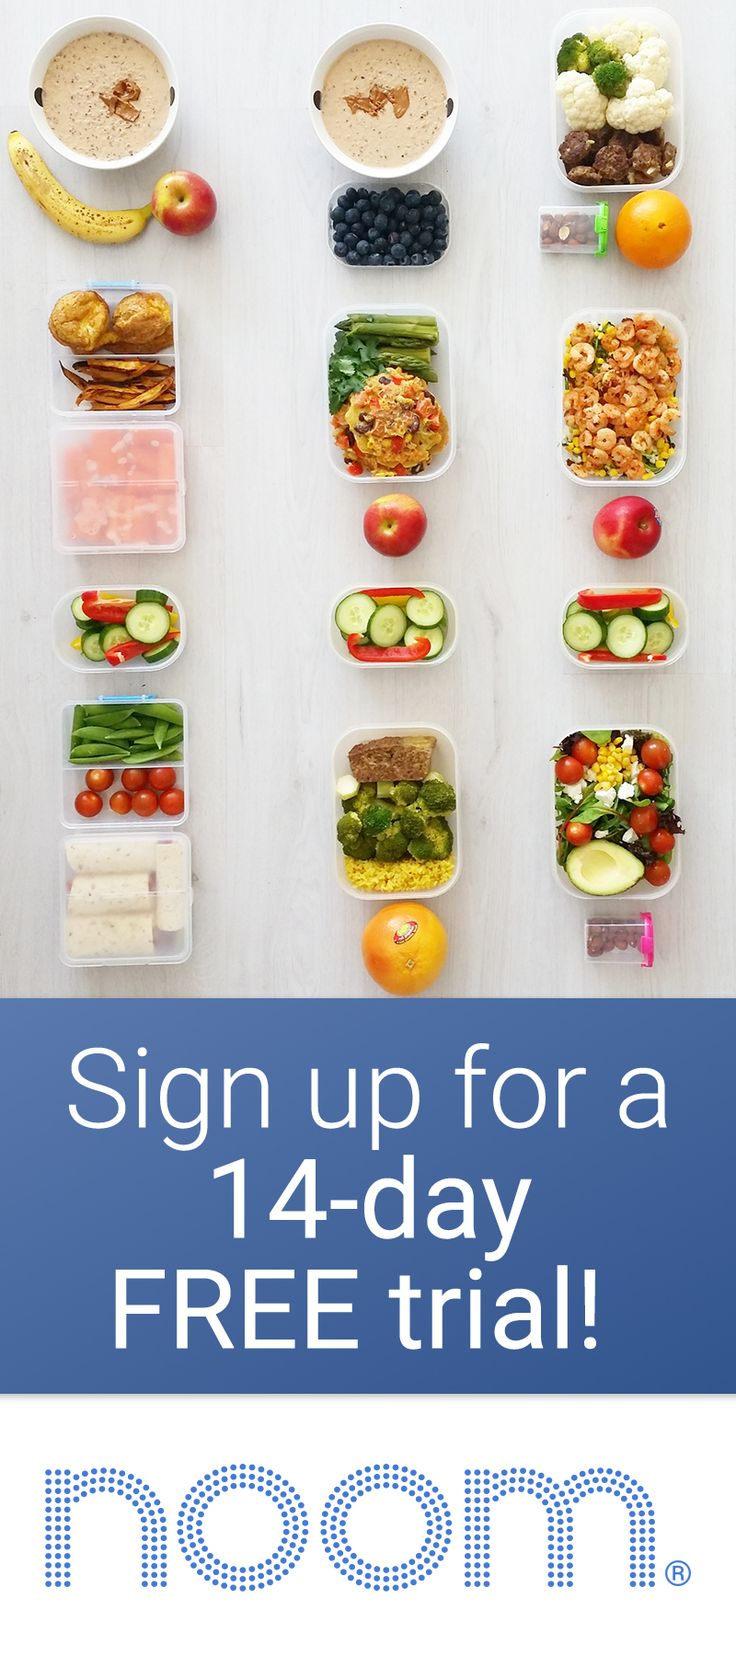 Noom offers 24/7 support with an award-winning, personalized course and expert coaches trained in behavior change to help you stick to your health, weight, and fitness goals. https://ww1.noom.com/programs/health-weight/exsf01/?utm_source=pinterest&utm_content=sf_3.14p